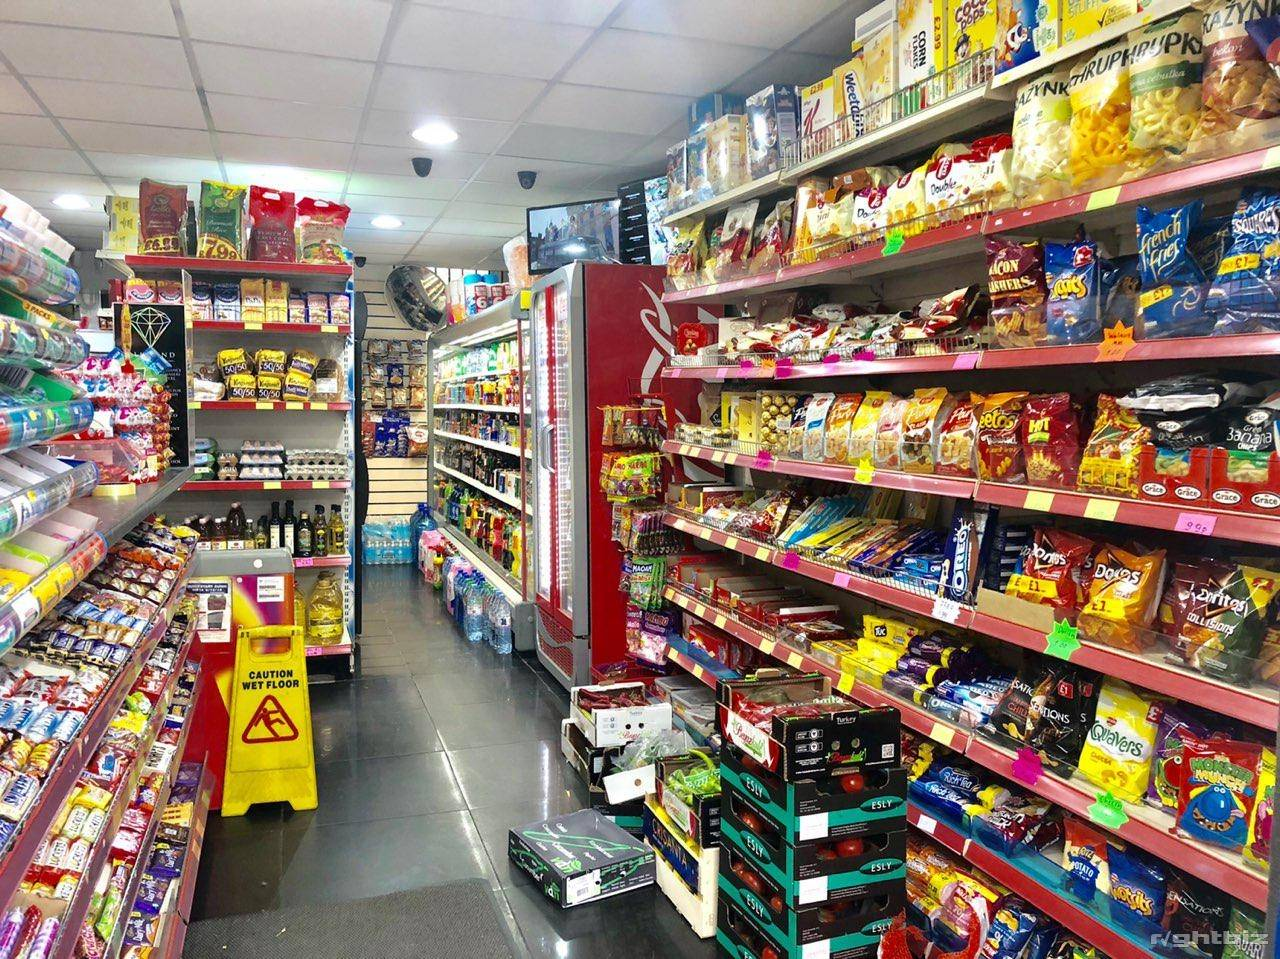 Off License & Grocery for Sale in Goodmayes Ilford IG3 9UN - Image 9